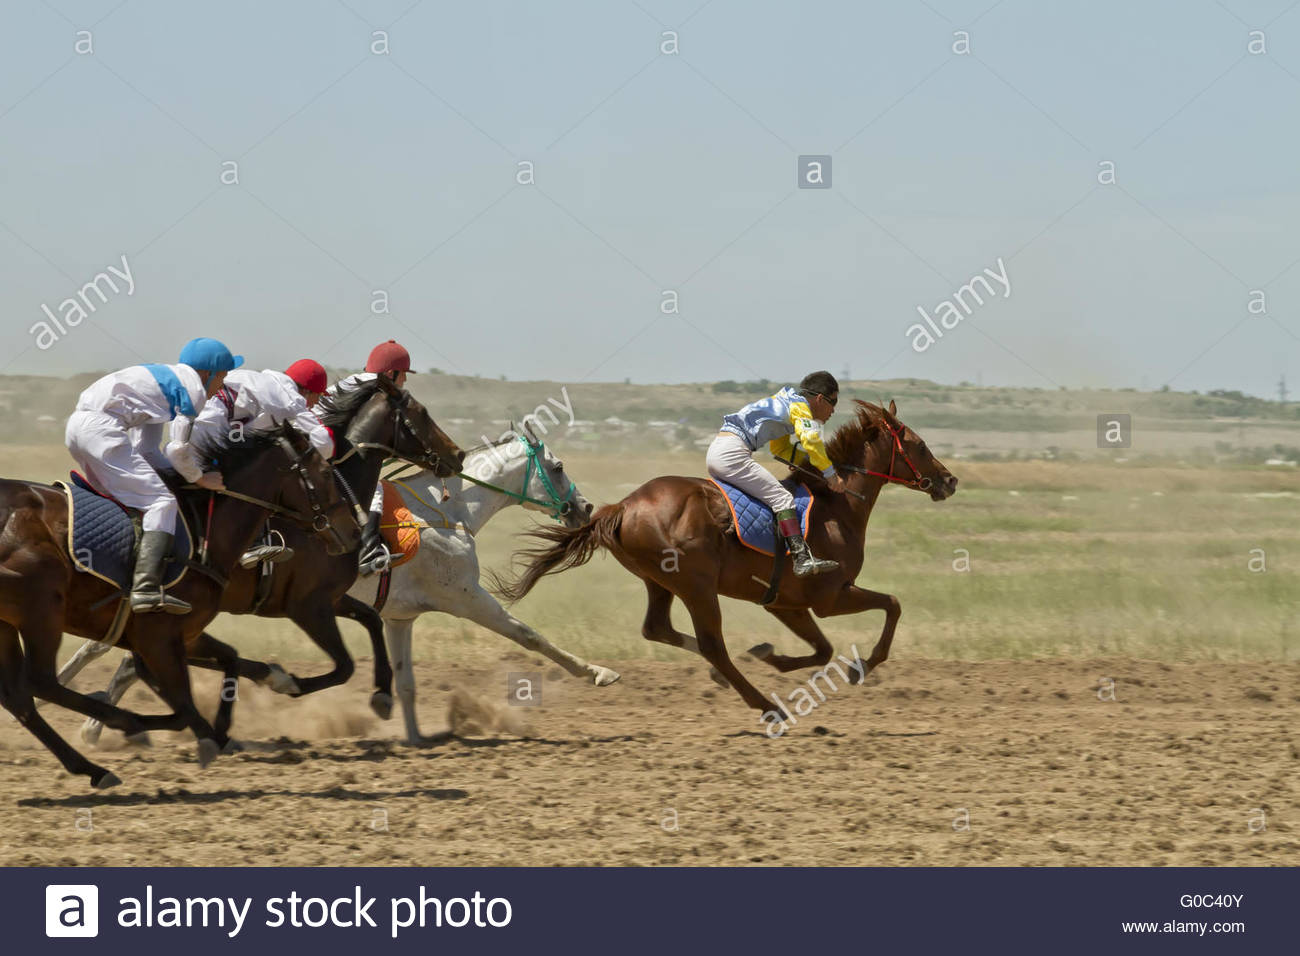 Jockey riding a horse during the horse races - Stock Image